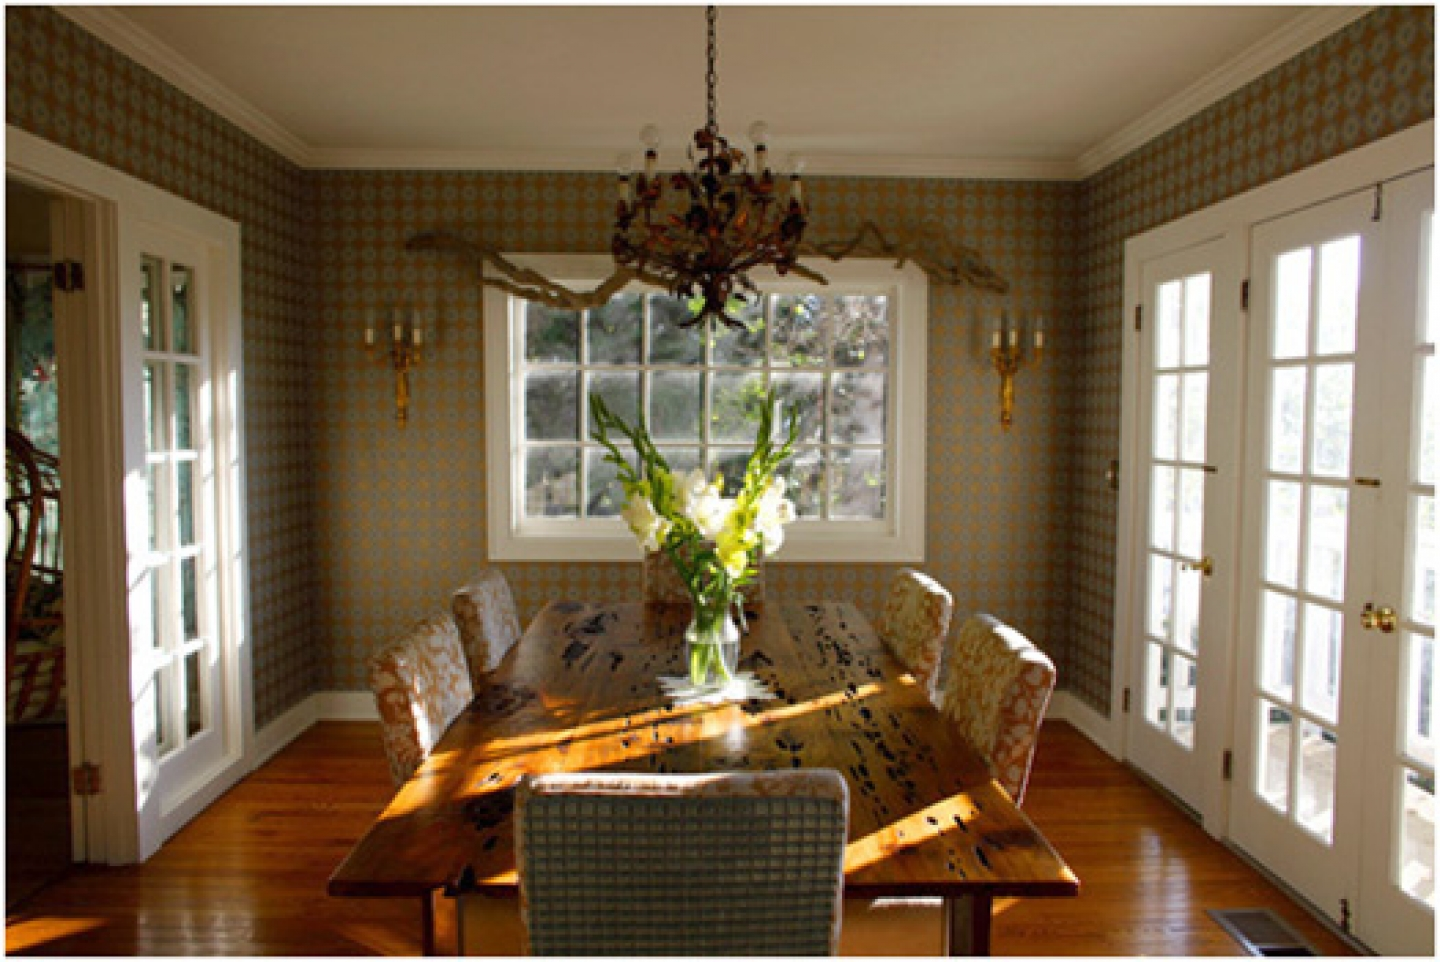 Dining room wallpaper 108 decor ideas enhancedhomesorg for Dining room wallpaper